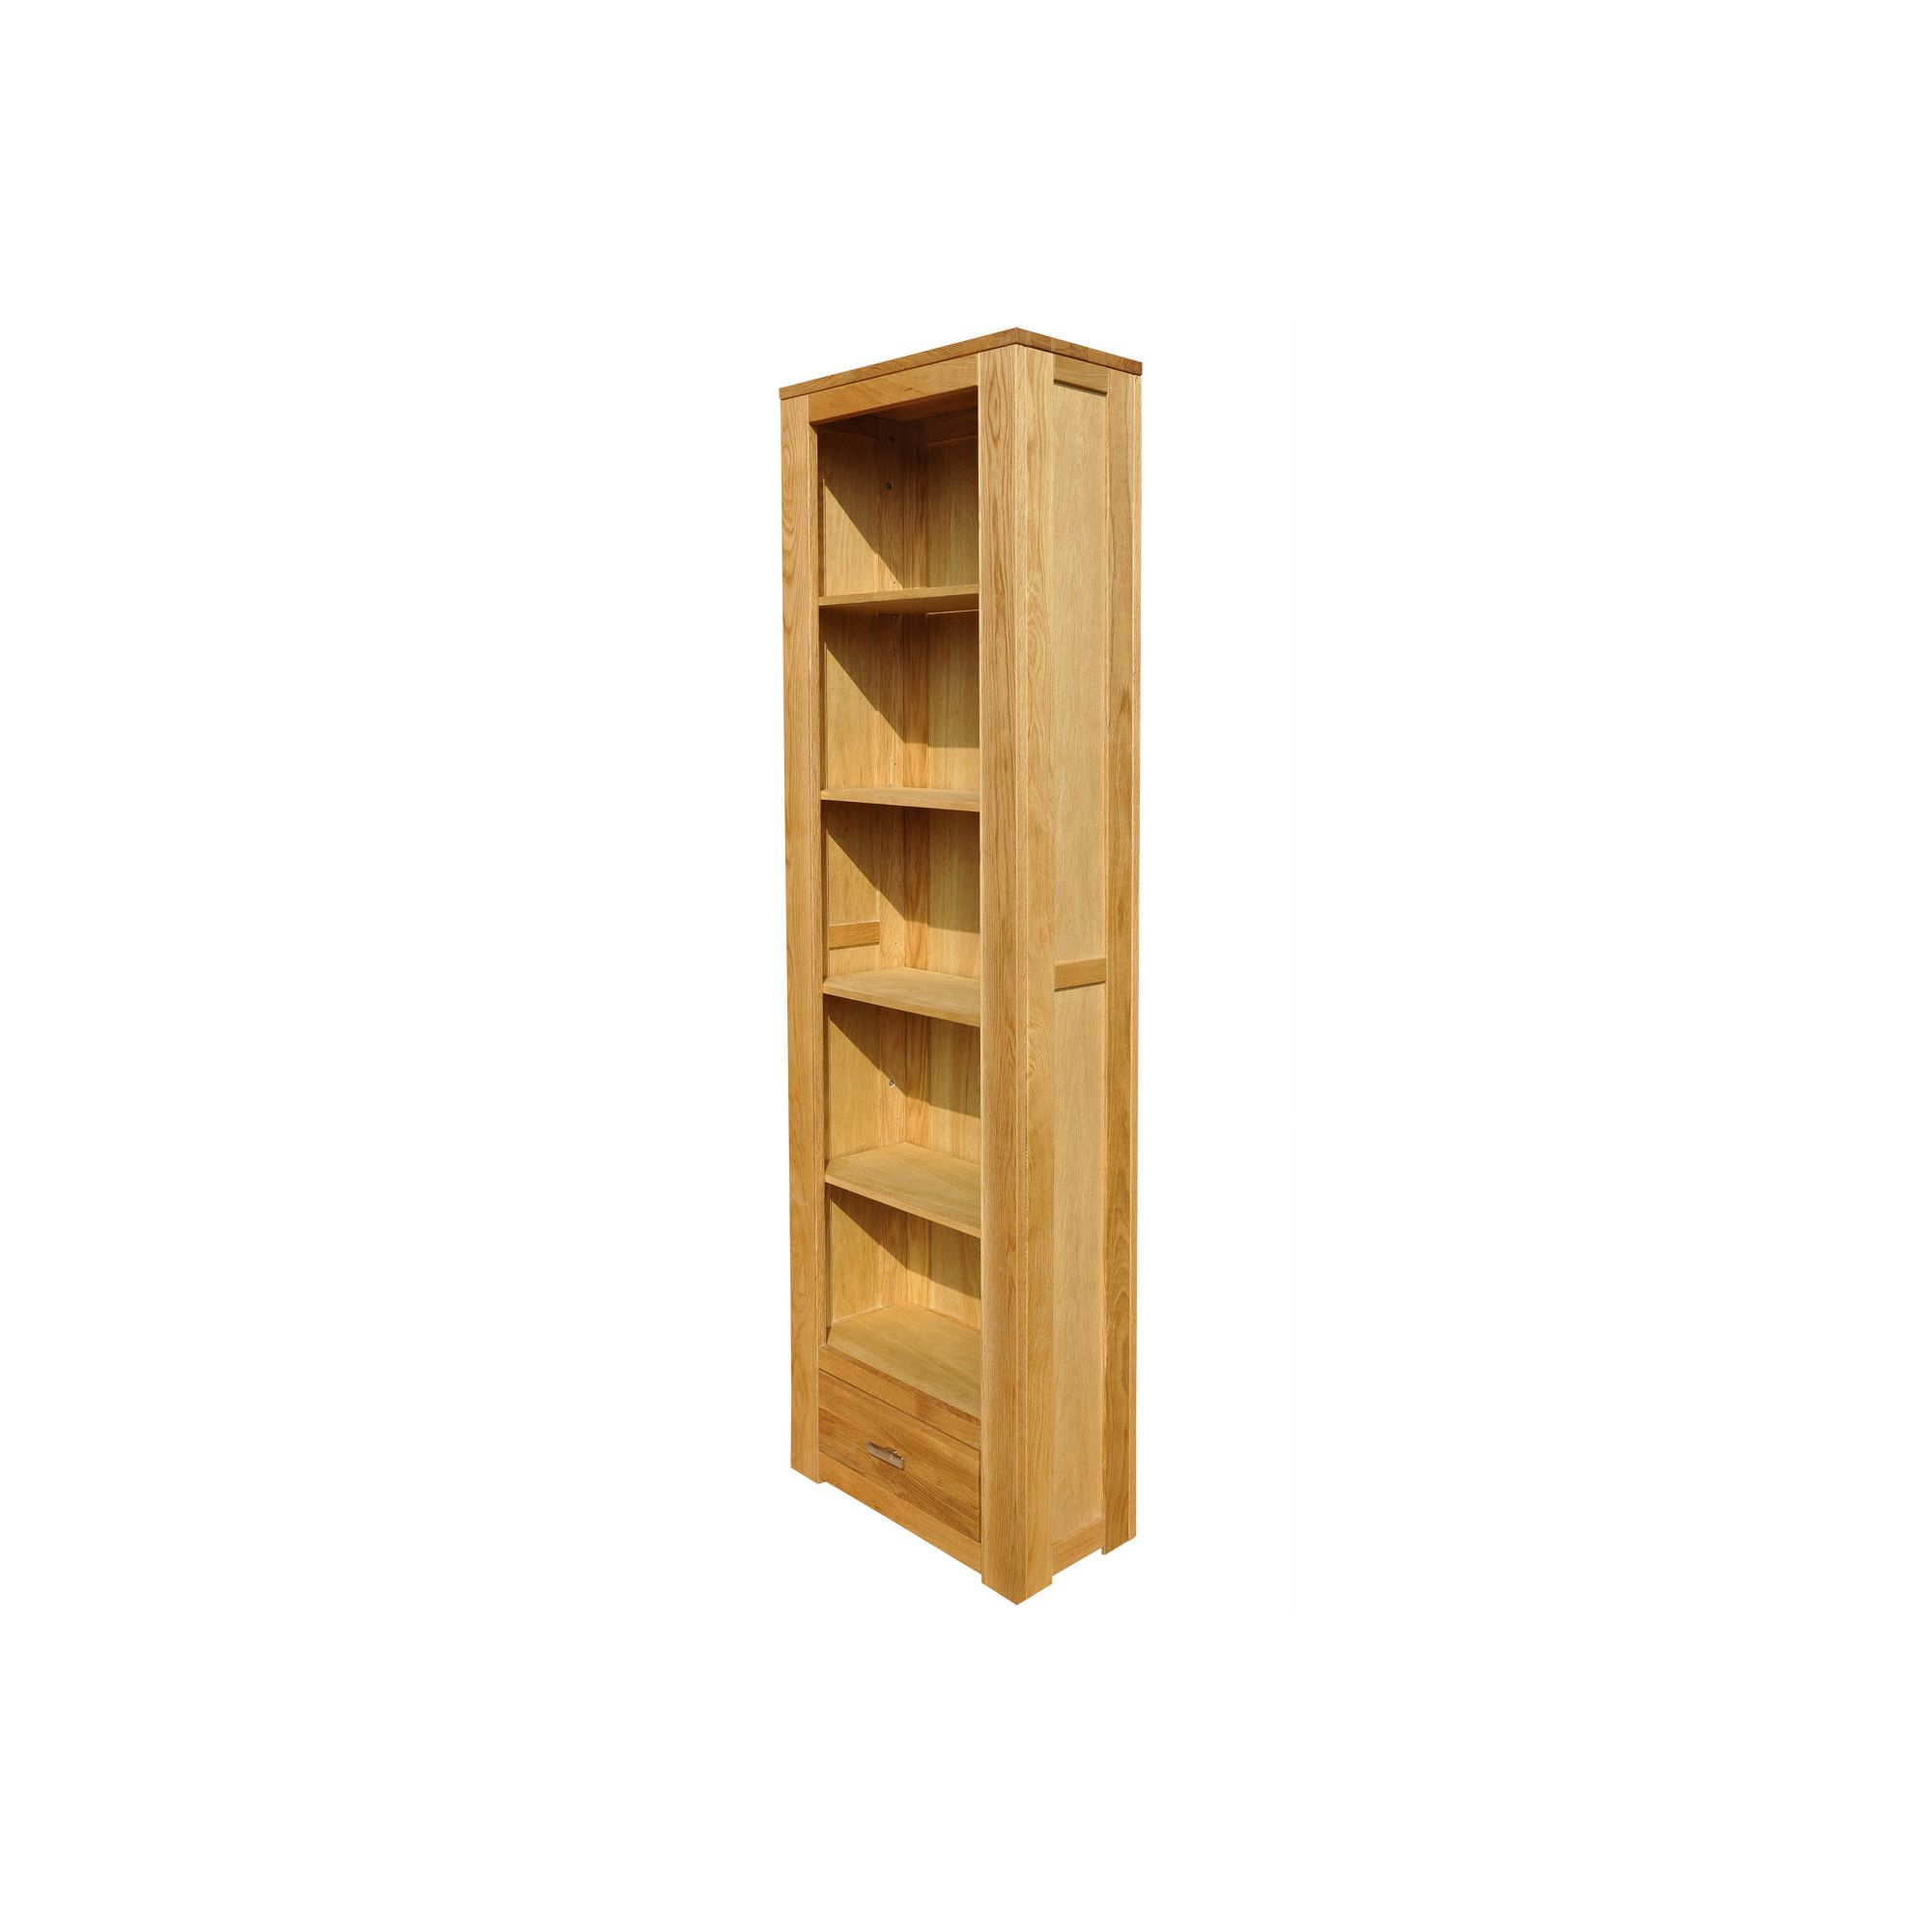 Home Zone Furniture Churchill Oak 2010 Narrow Book Case in Natural Oak at Tesco Direct